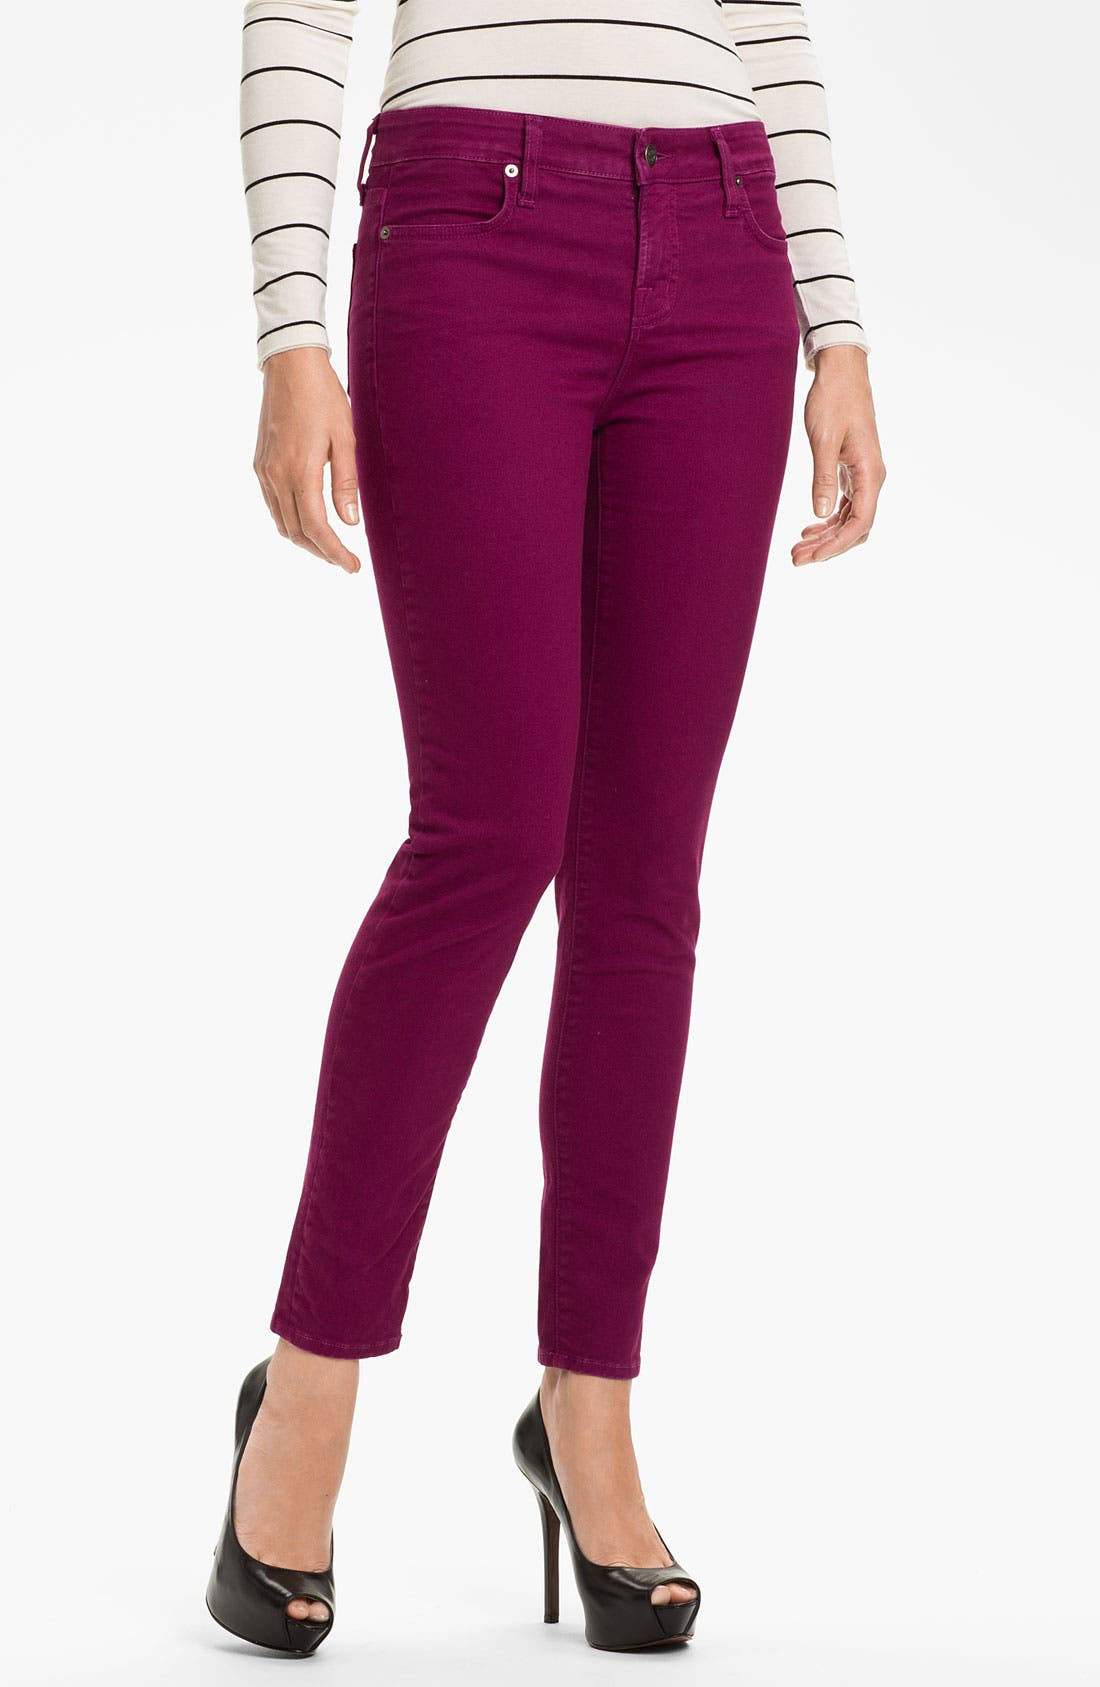 Main Image - Blue Essence Skinny Twill Ankle Jeans (Nordstrom Exclusive)